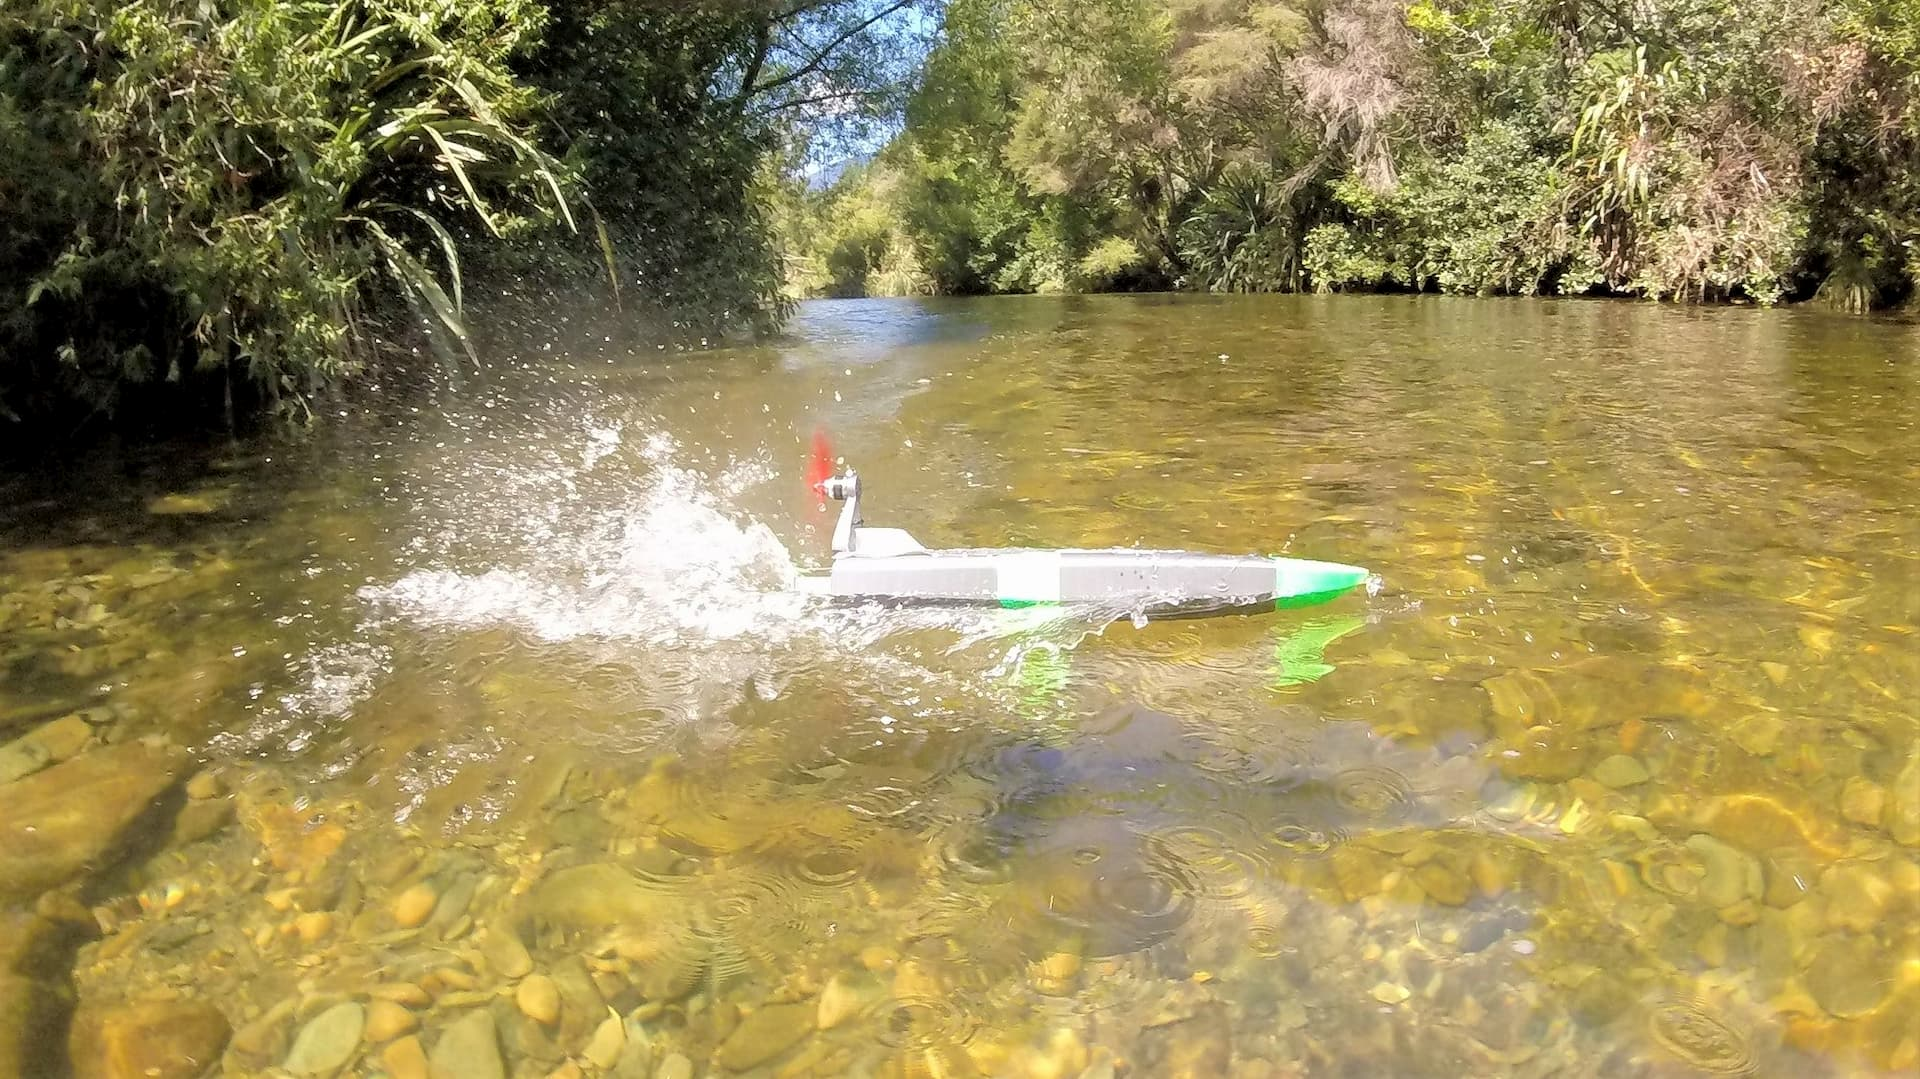 3D Printed RC Boat: The Best Projects for Rocking Boats | All3DP